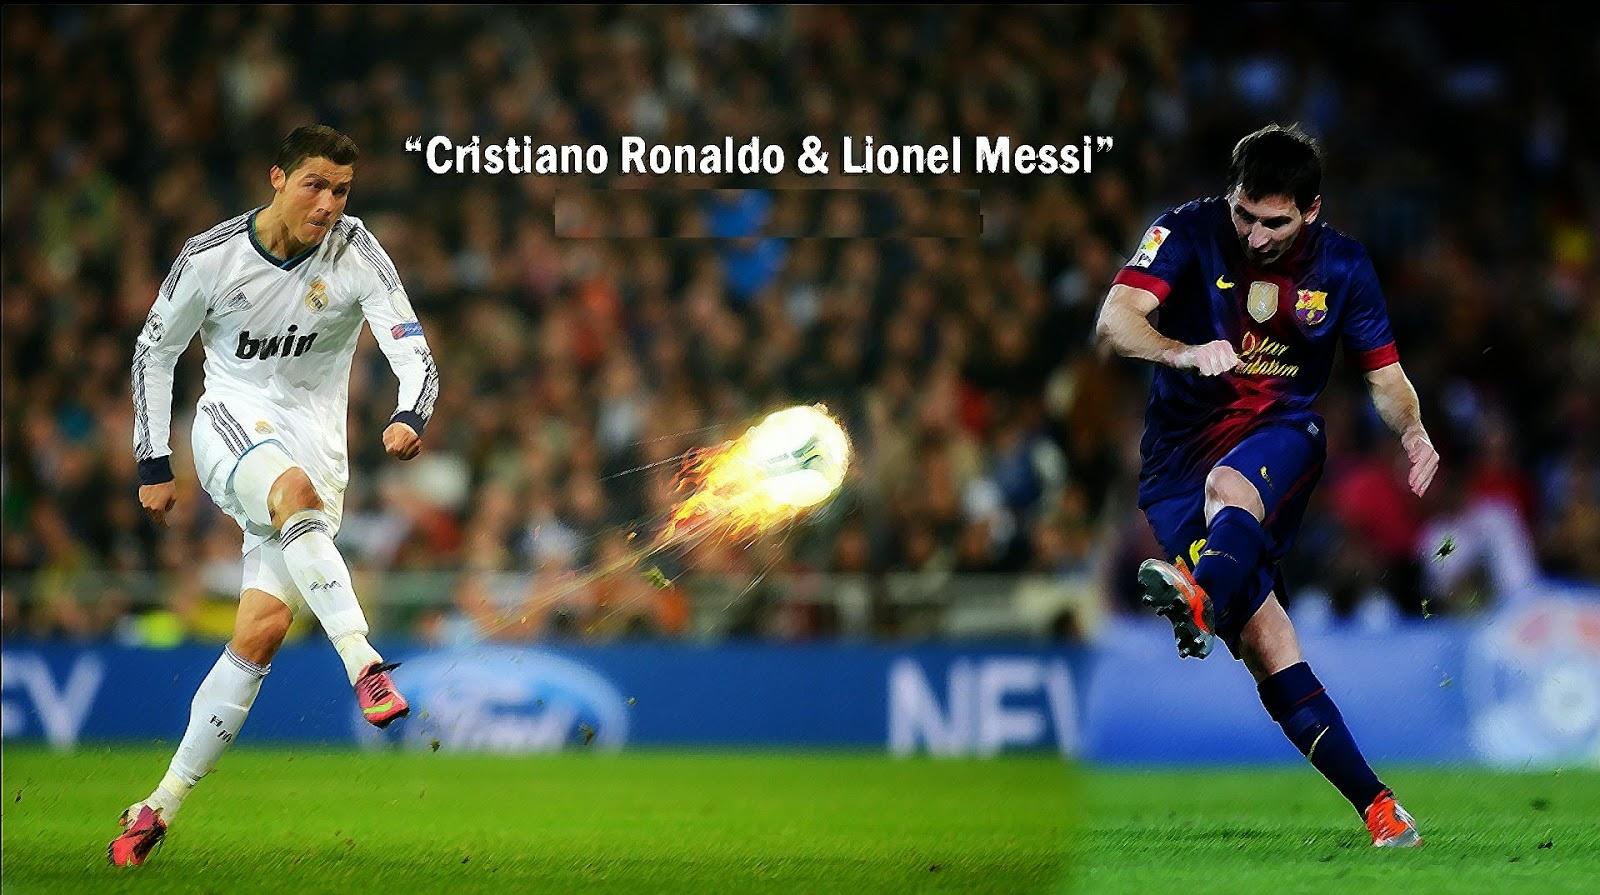 lionel messi vs cristiano ronaldo The cristiano ronaldo vs lionel messi debate is likely to go on and on for long after they've both retired, but some interesting champions league stats suggest we may finally.